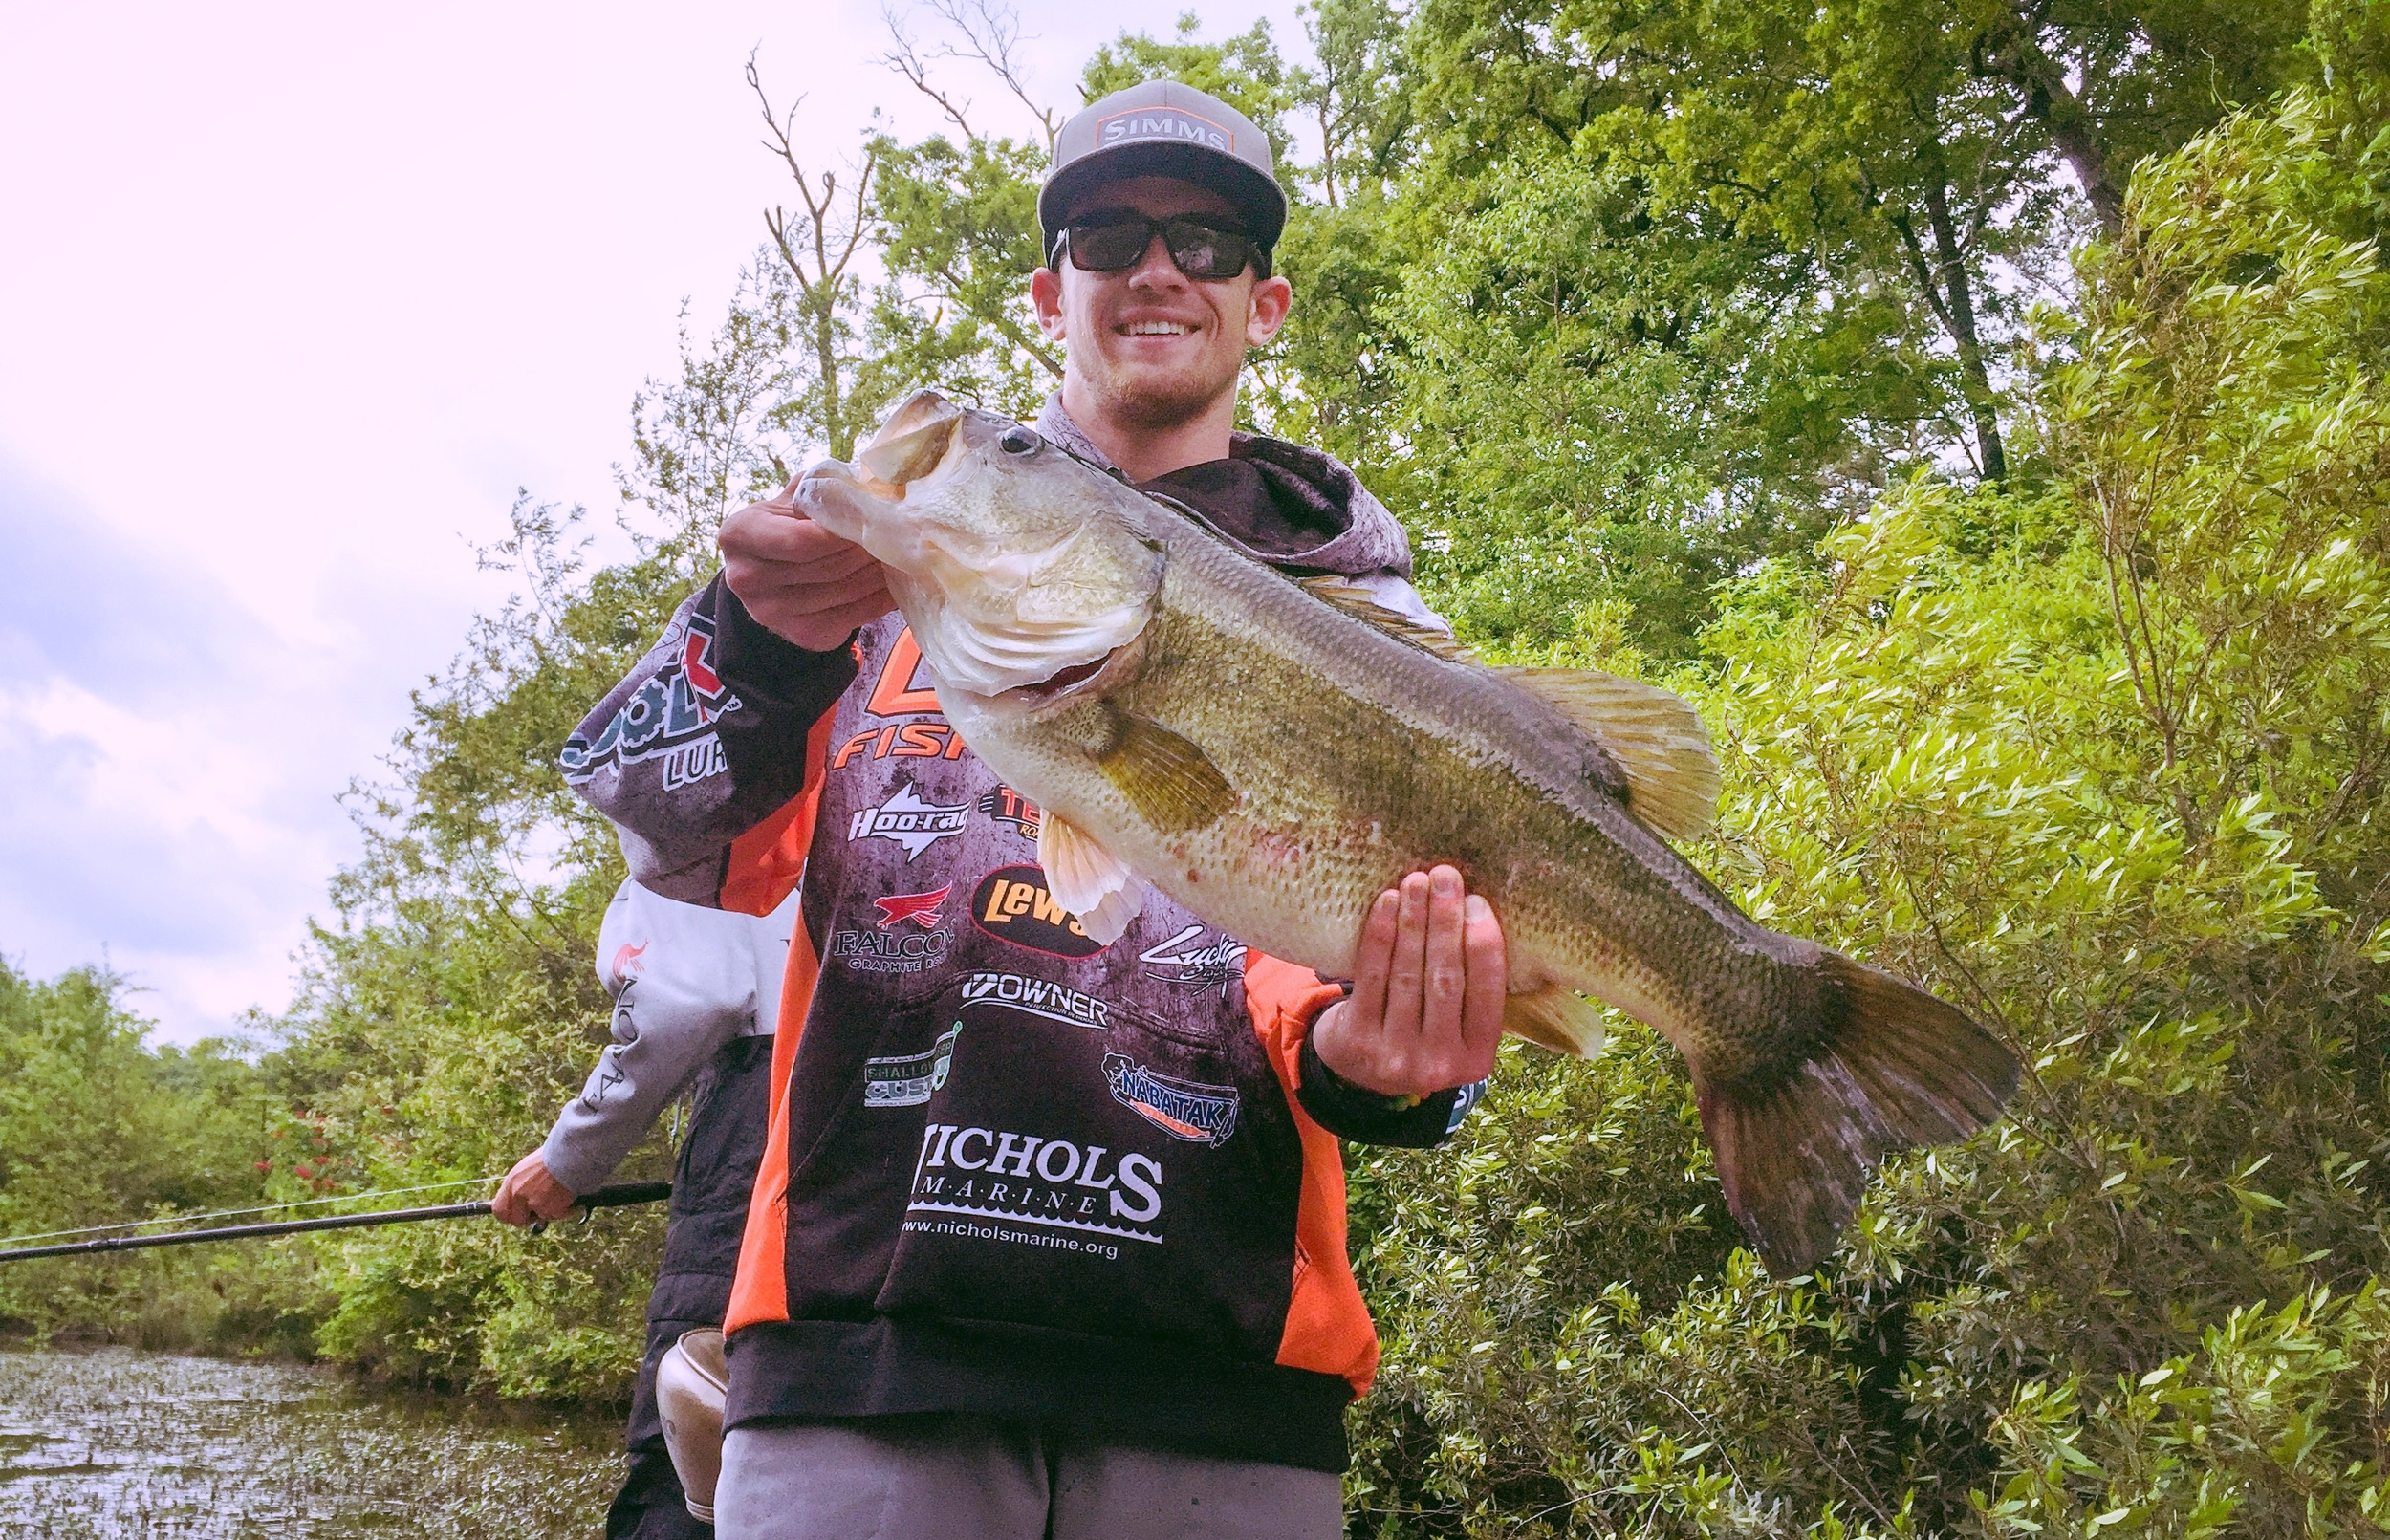 Gallery-Hunter-Theissen-Oklahoma-Professional-Outdoorsman-Competitive-Angler-Waterfowl-hunting-guide-bass-fishing-2.jpg